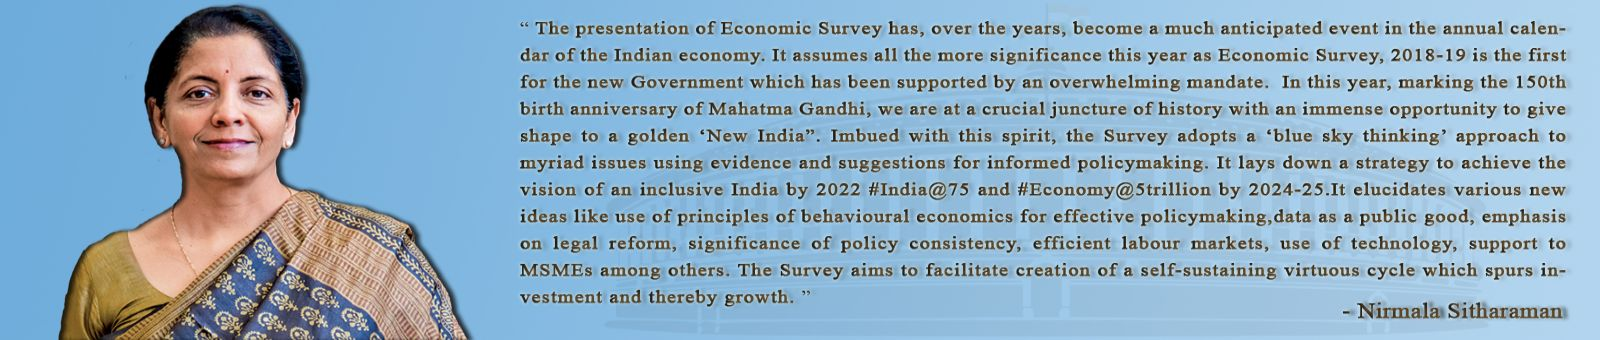 Economic Survey 2018-19